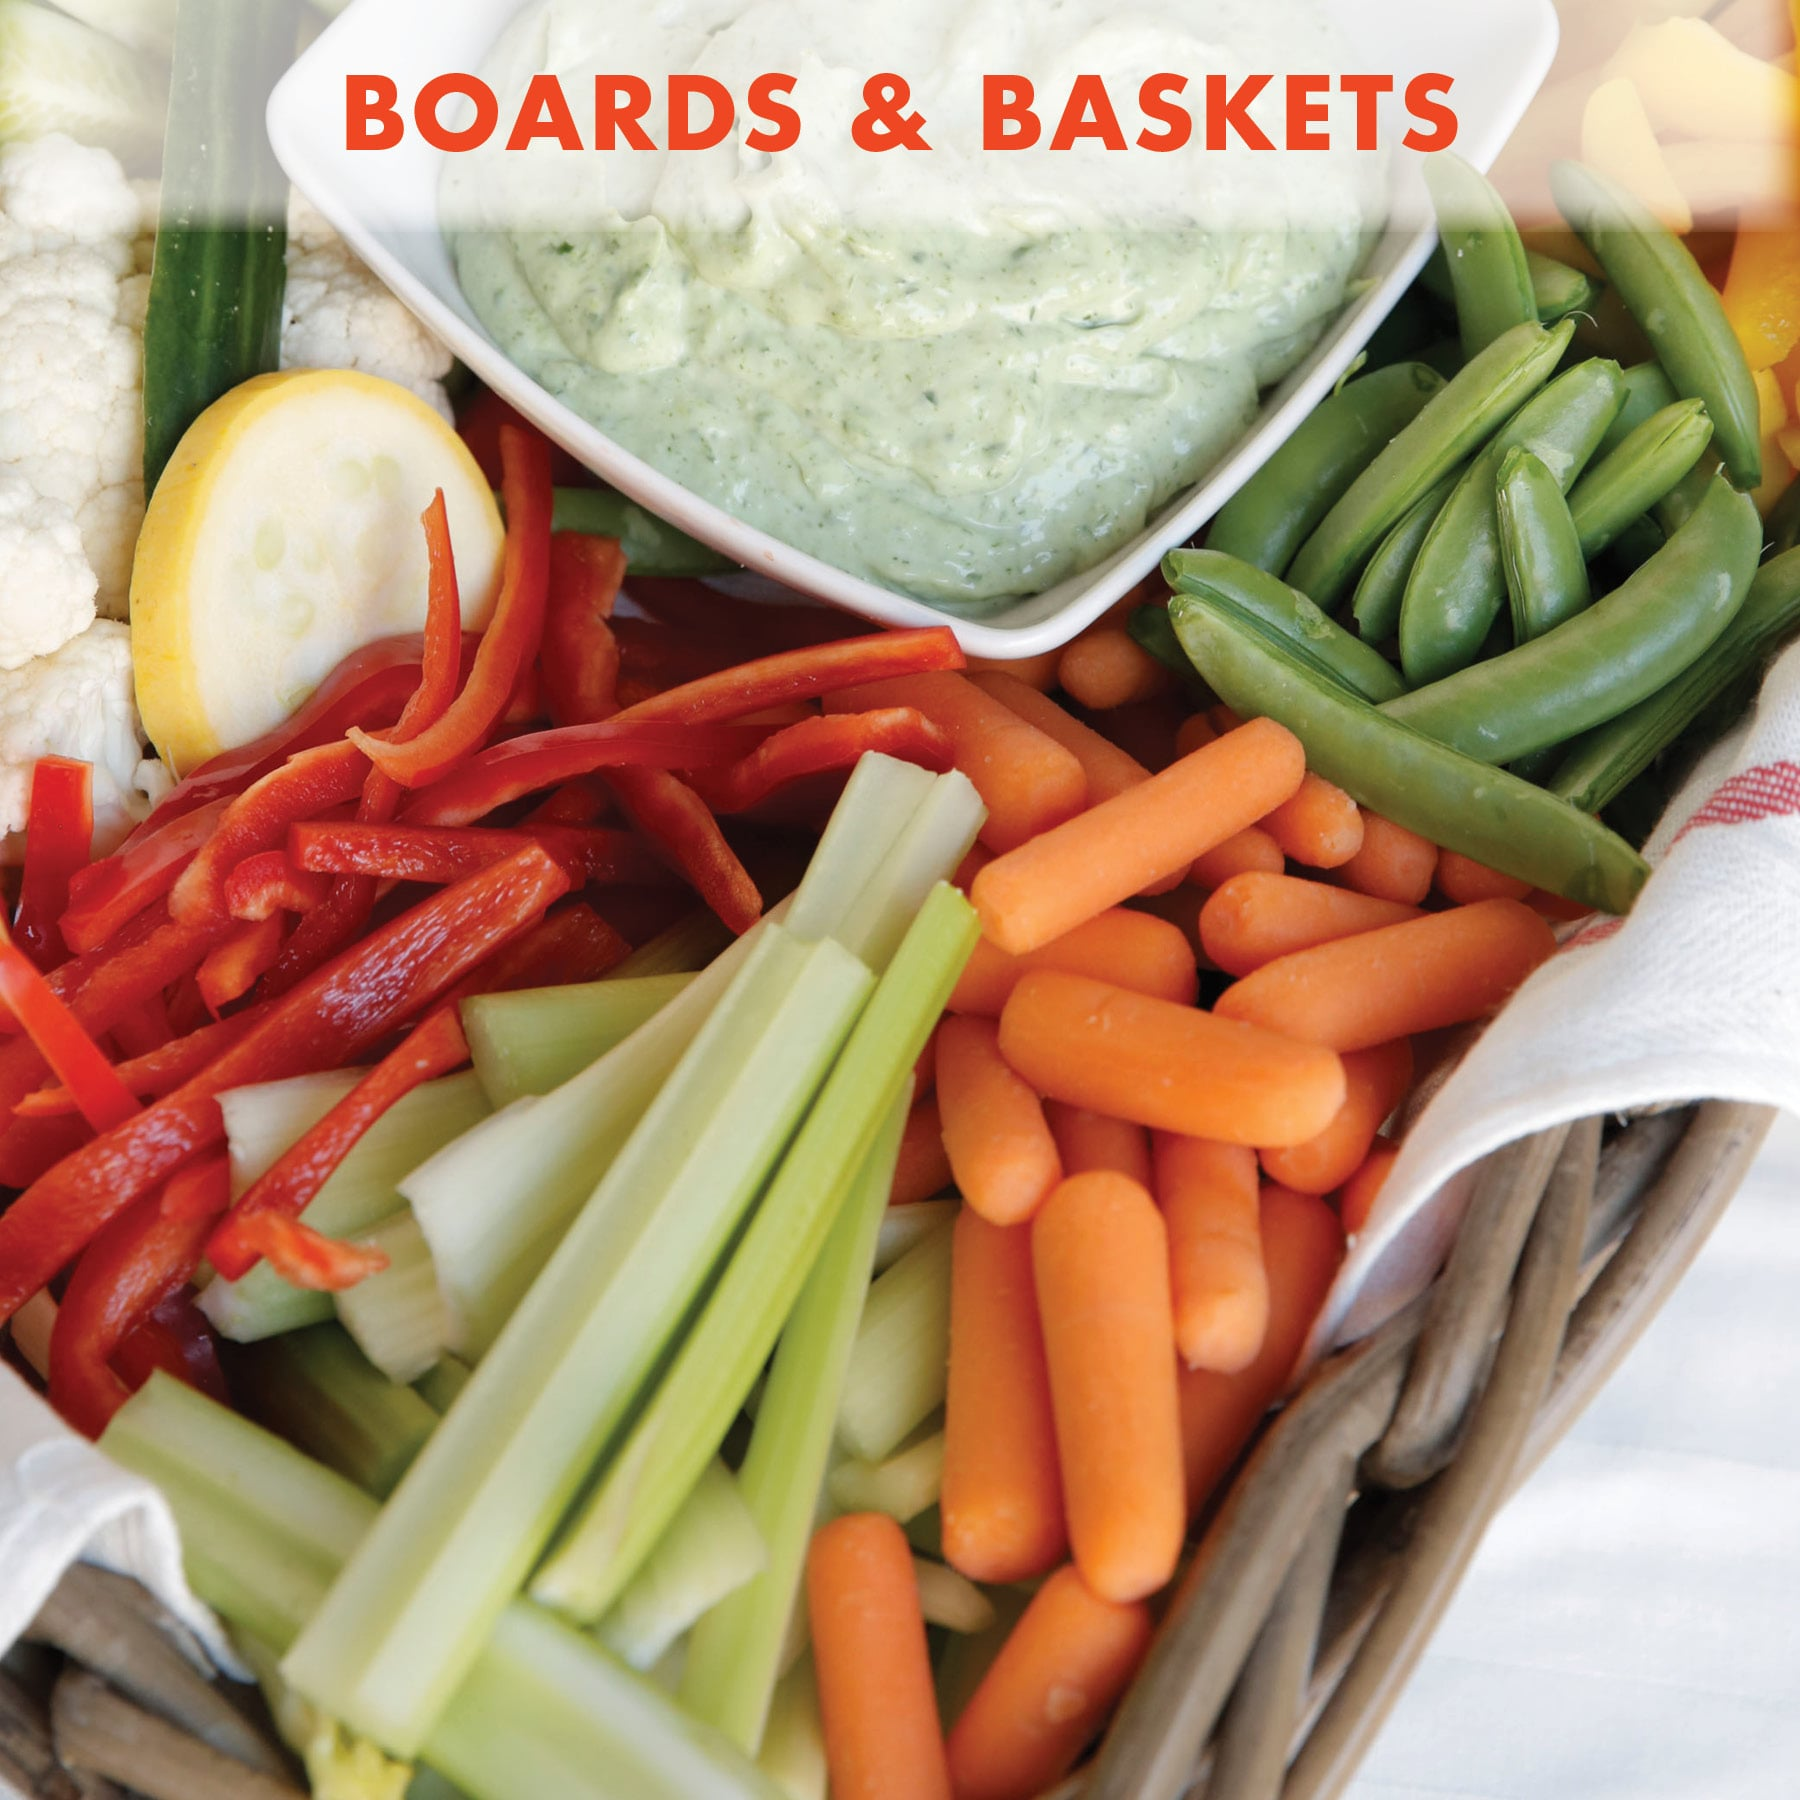 Boards & Baskets